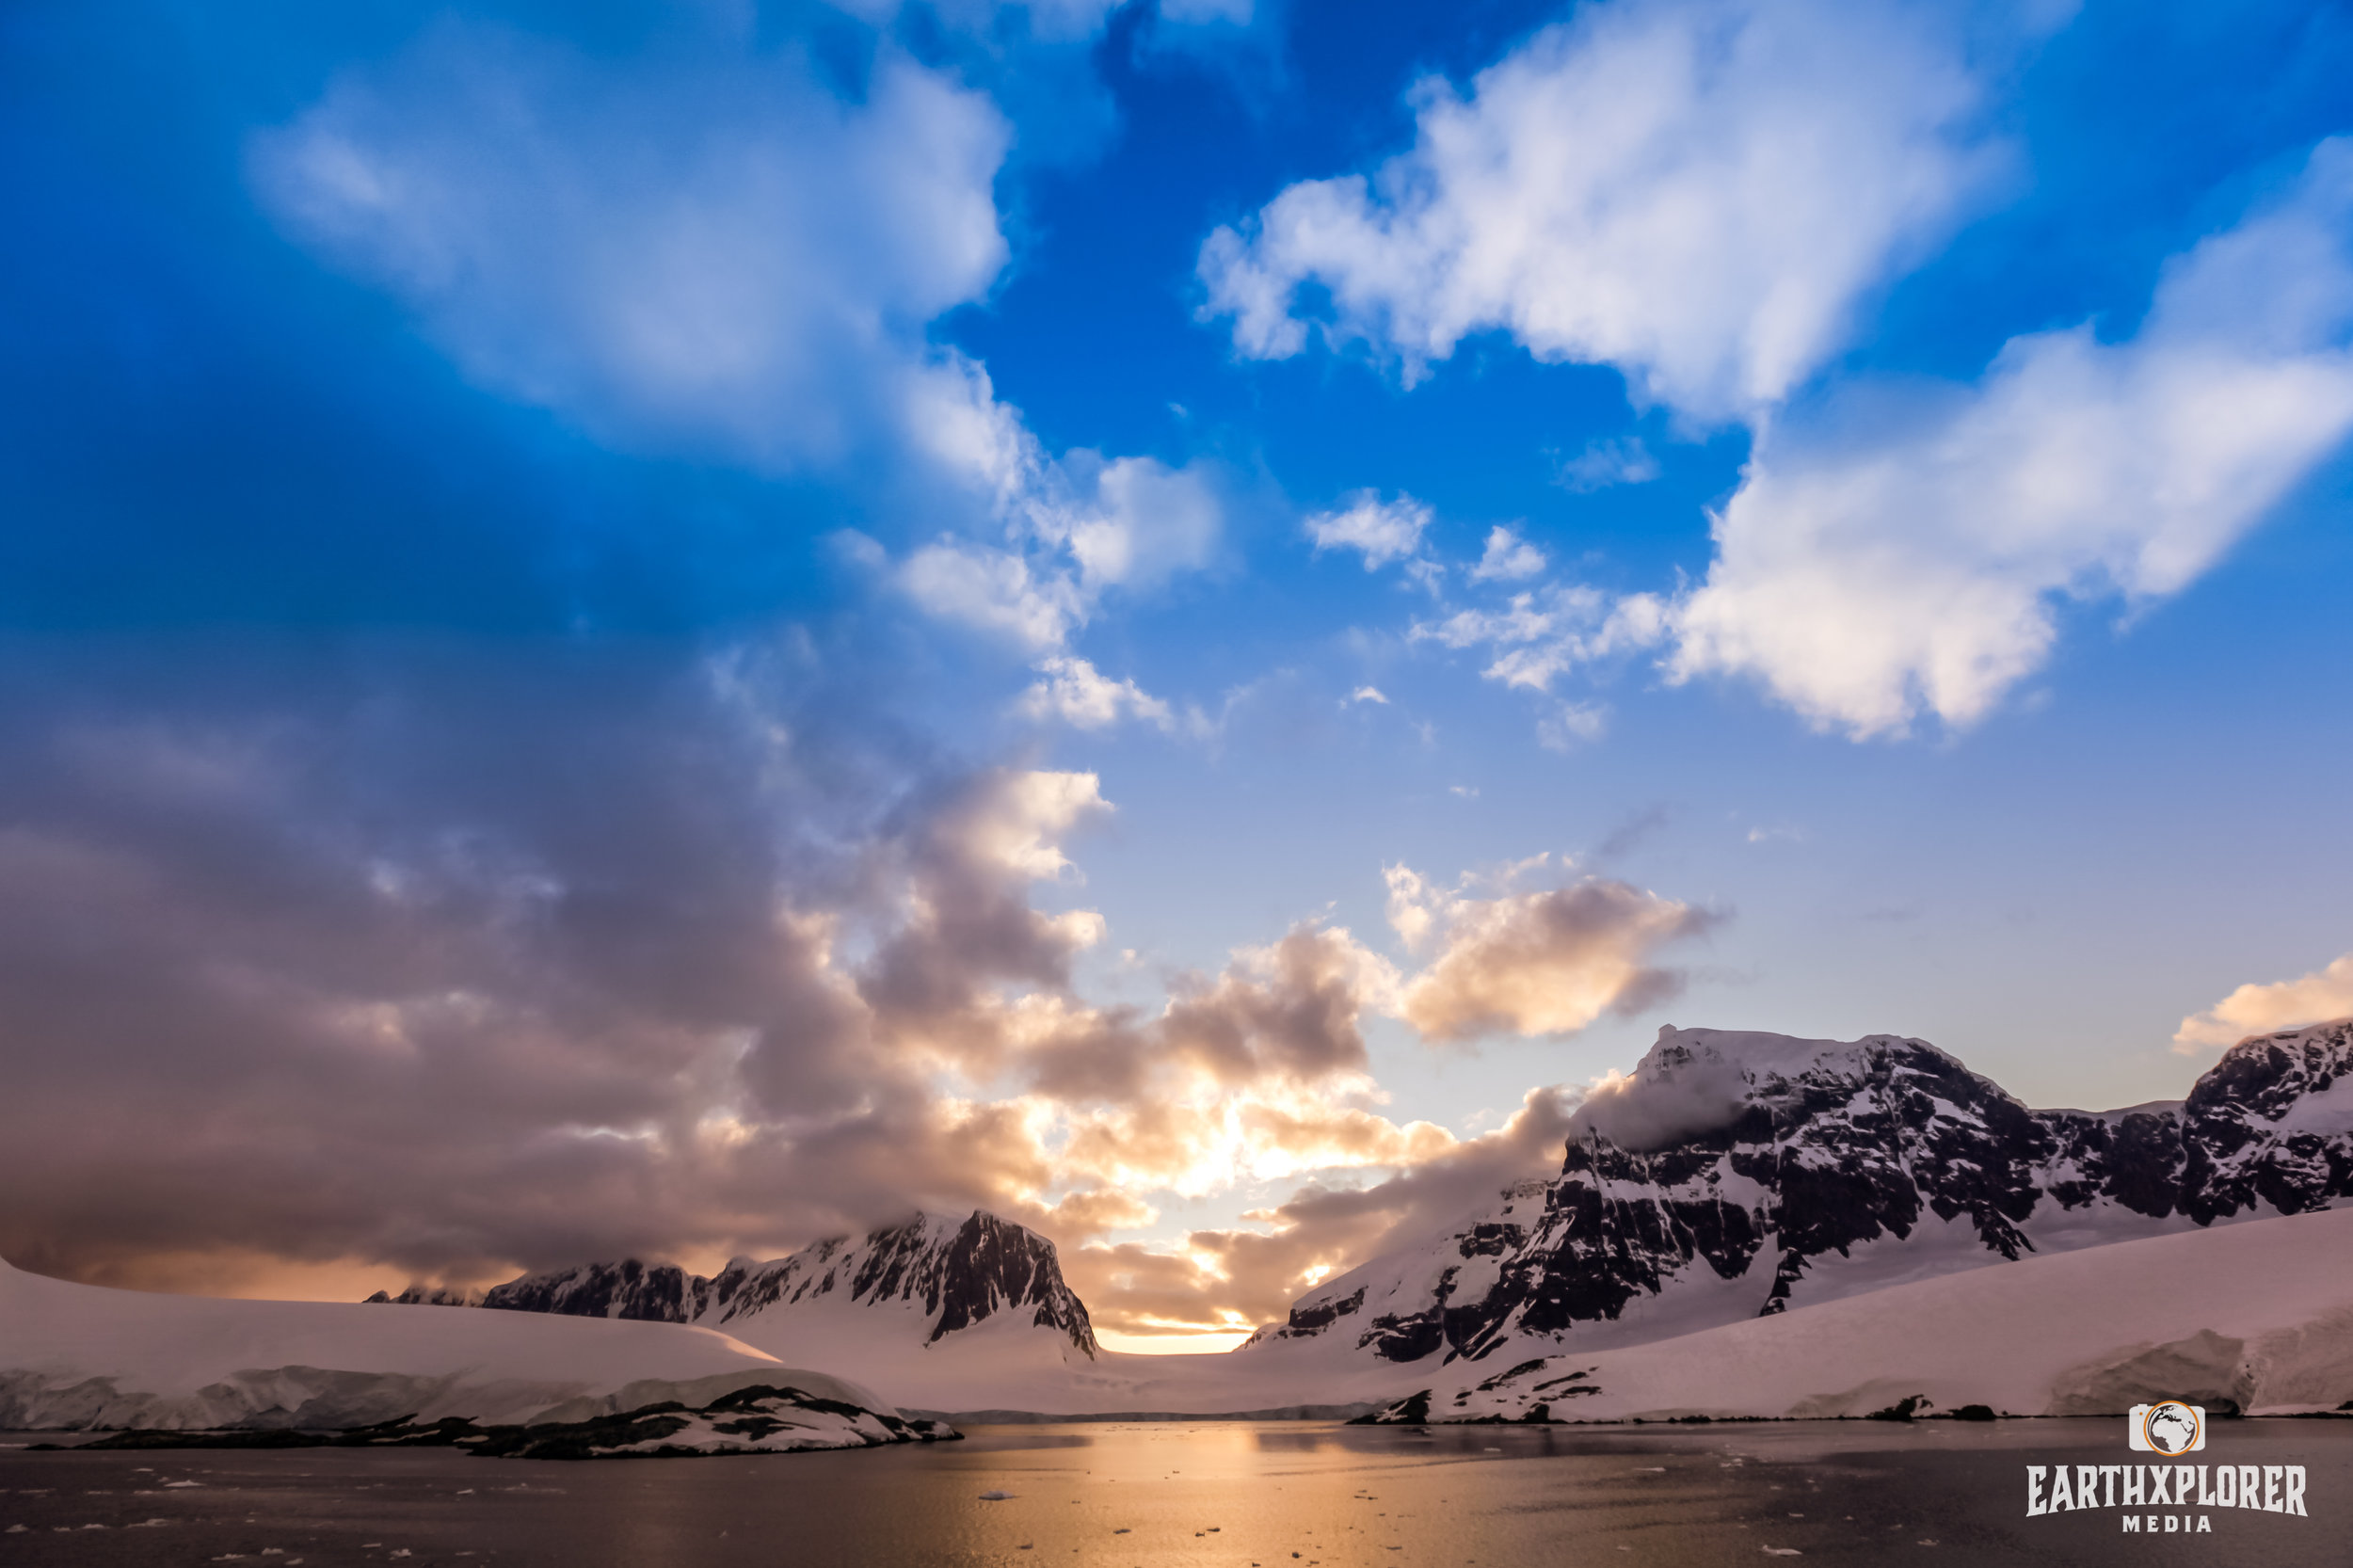 Antarctica Sunrise earthxplorer.jpg